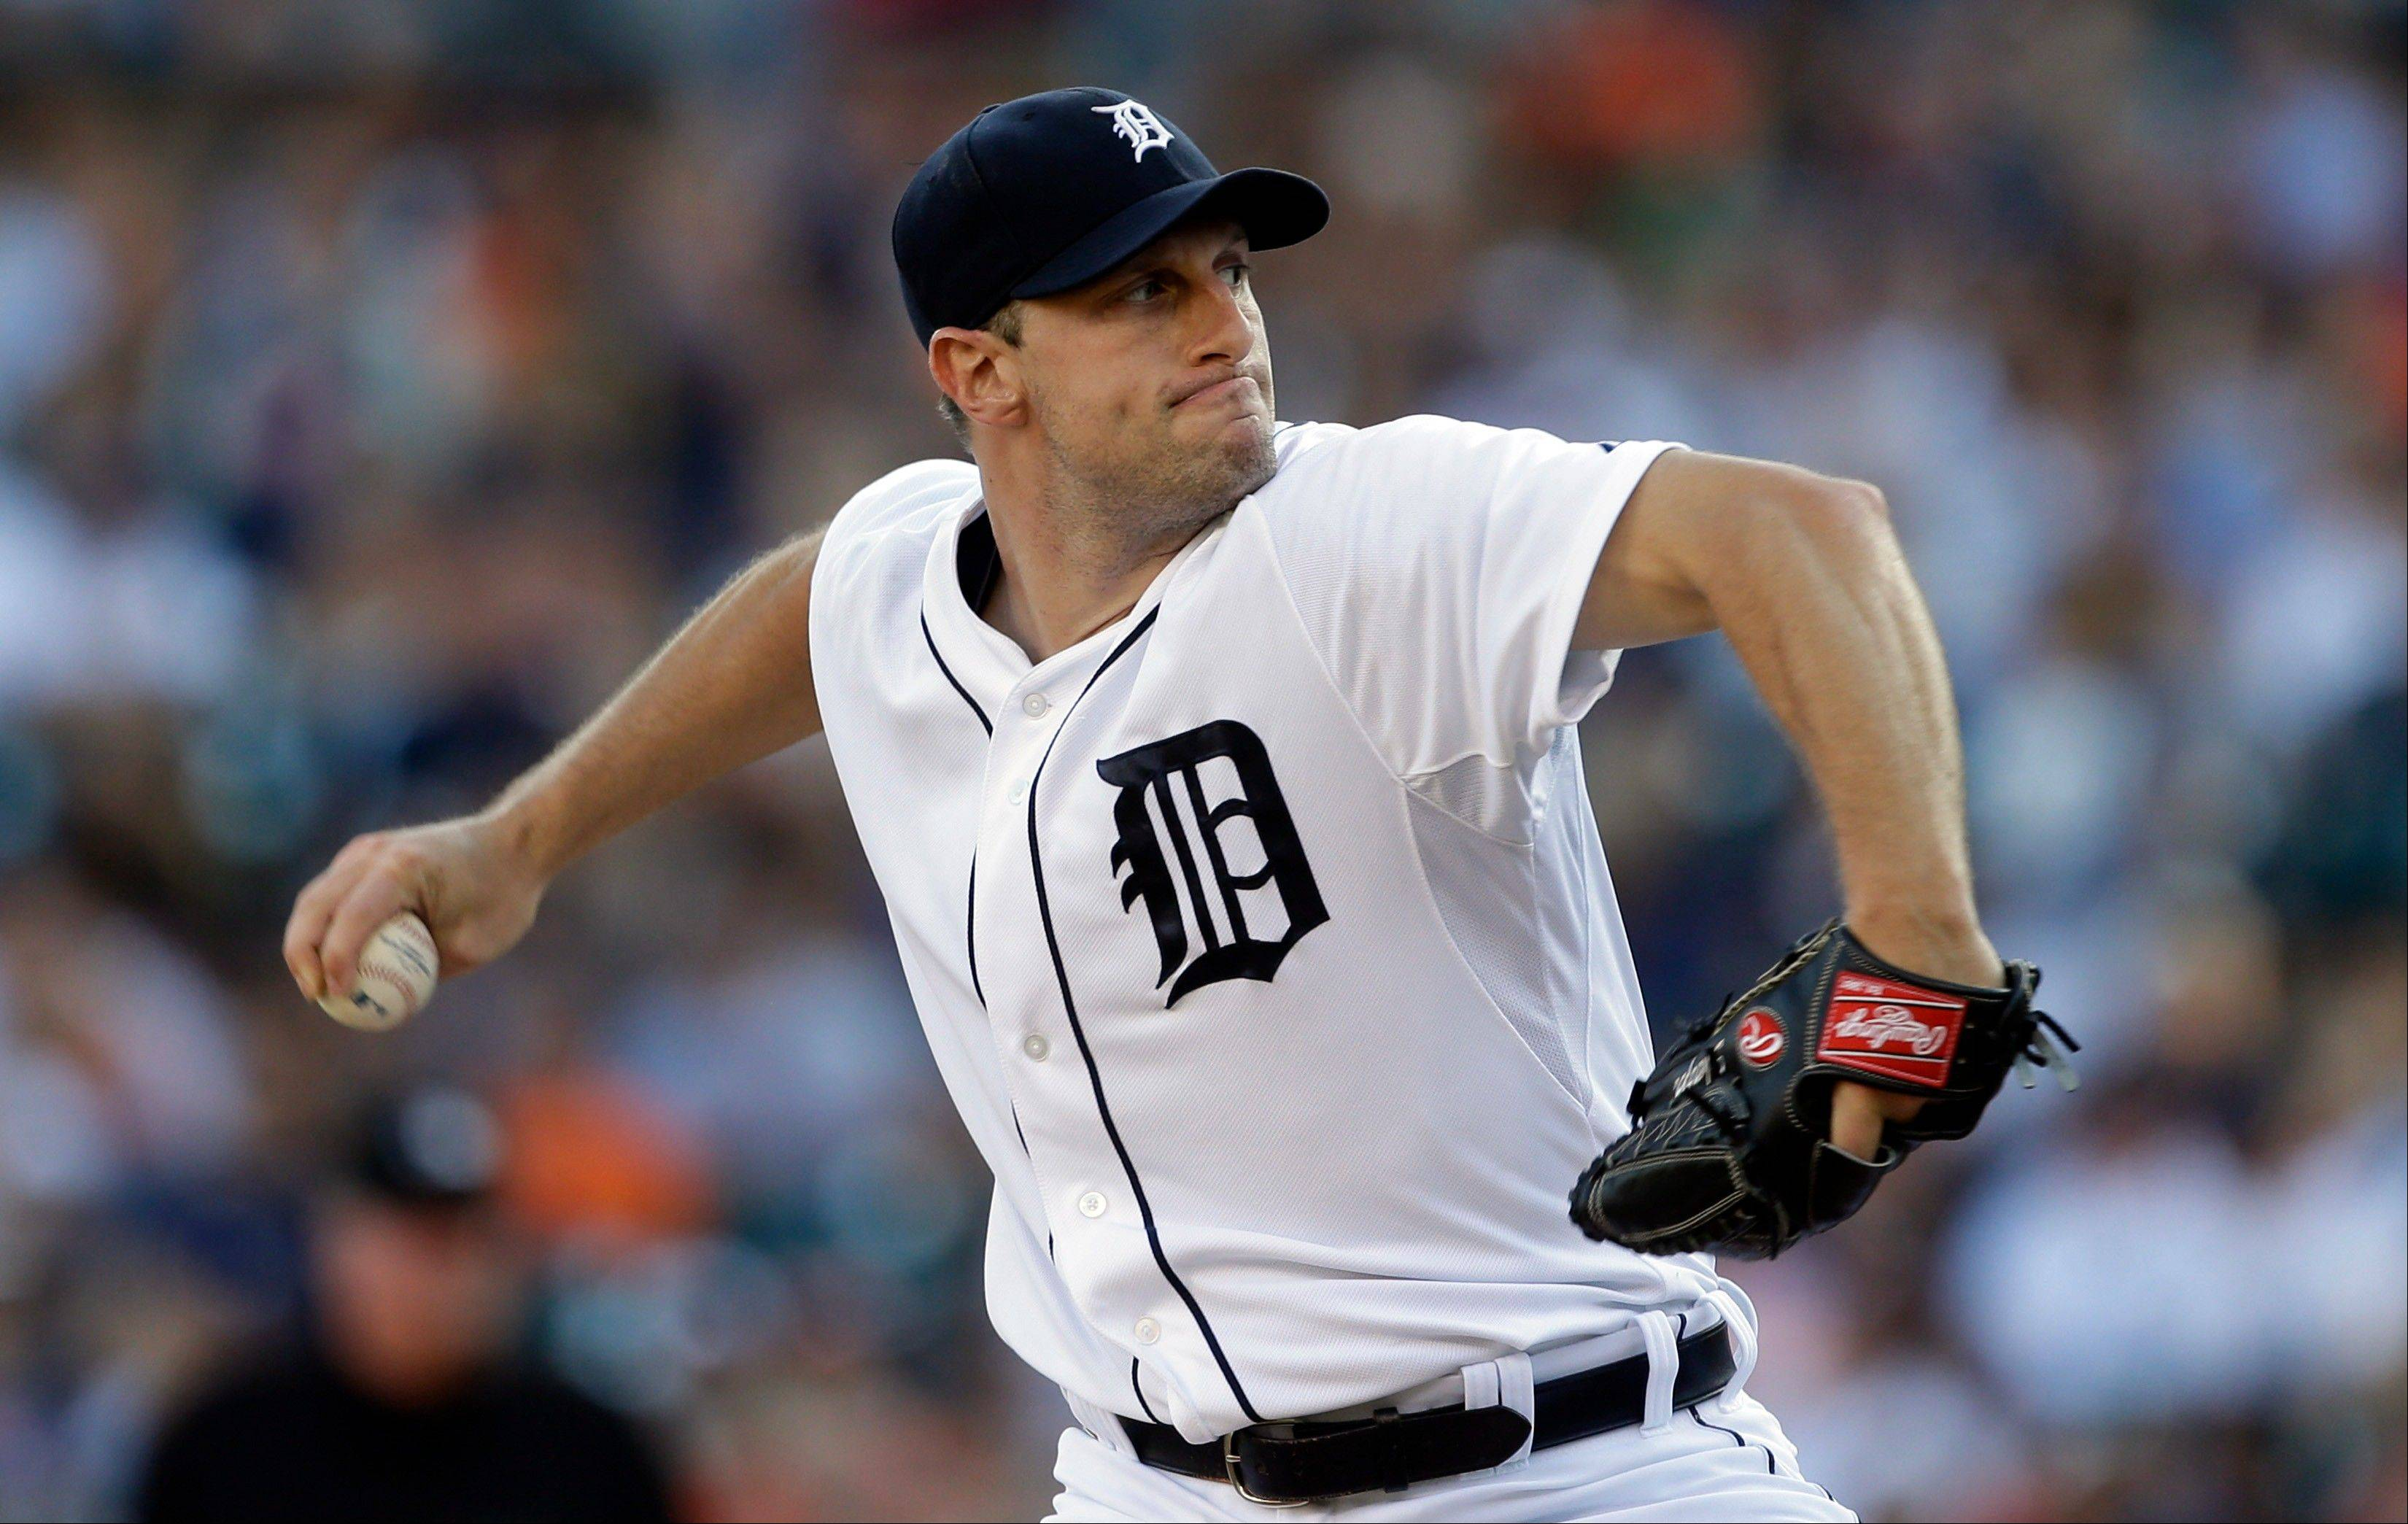 Mets' Harvey, Tigers' Scherzer to start All-Star game